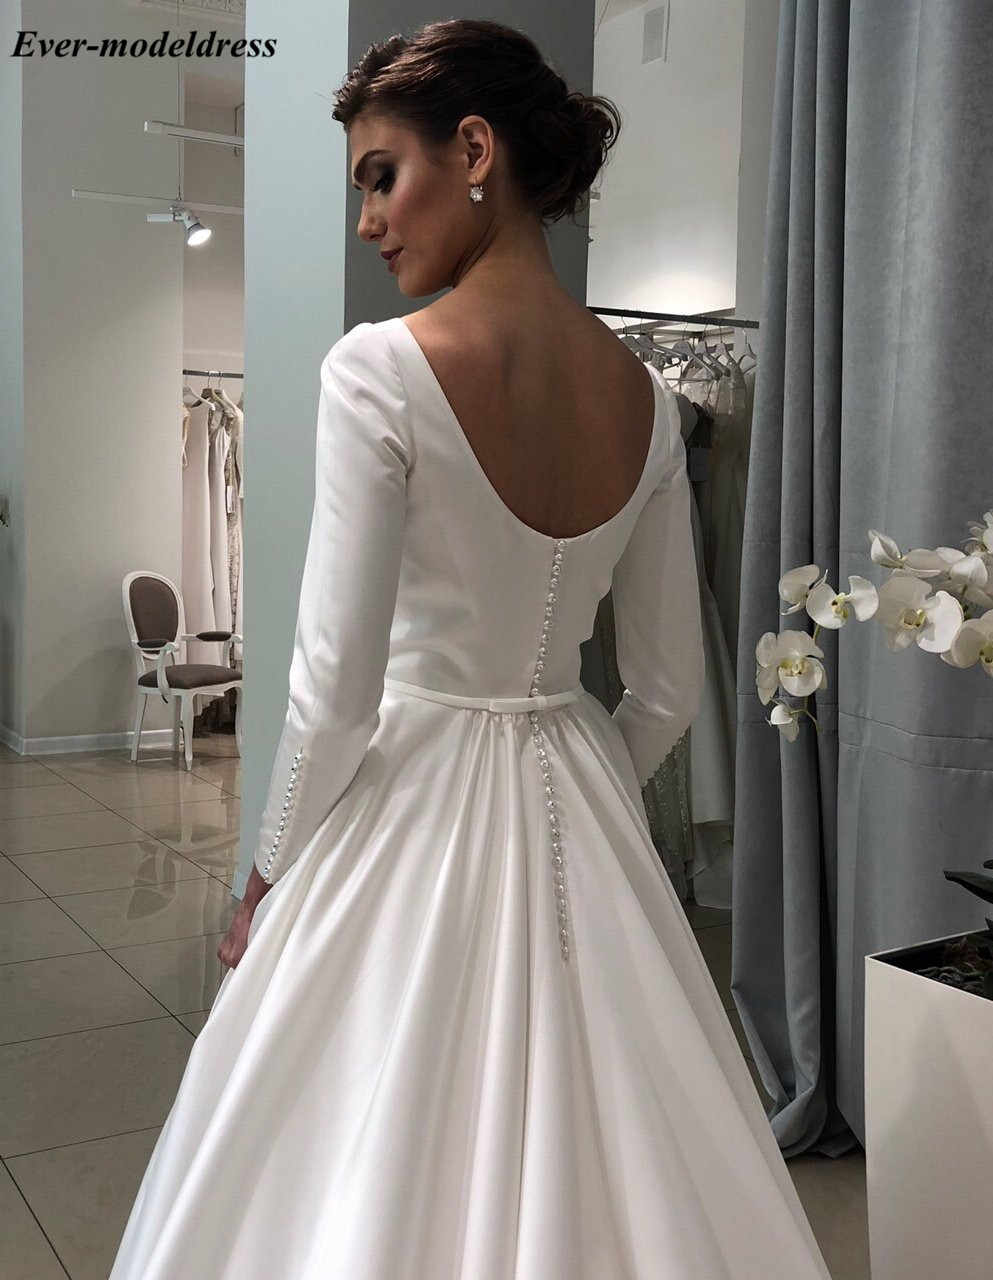 d86fa2cfbe Satin Simple Wedding Dress Long Sleeves Sexy Button Back Sweep Train  Elegant Bridal Gowns Plus Size Customized Vestido De Noiva